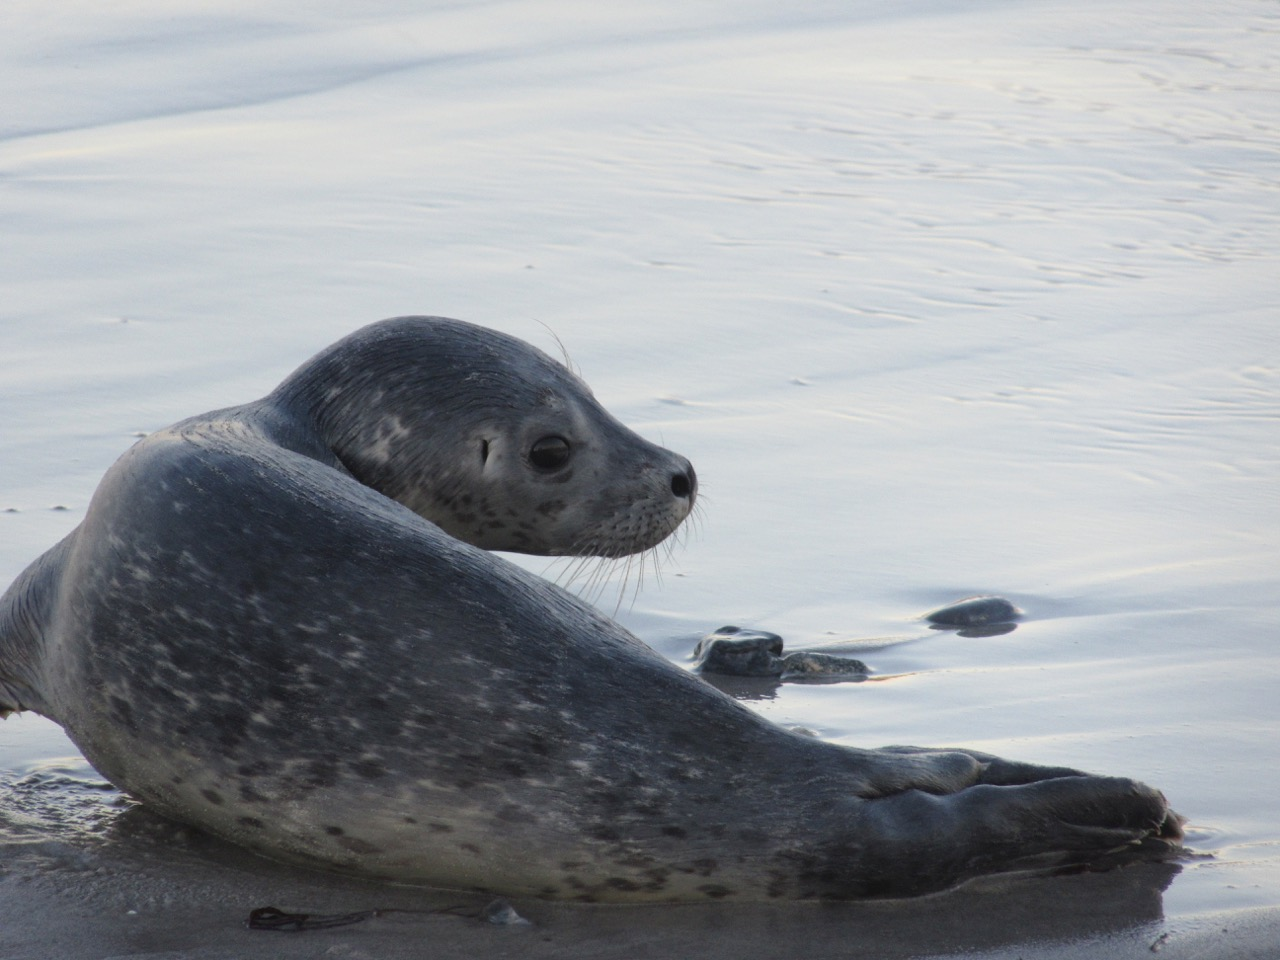 Seal Pup turns to go back in the water